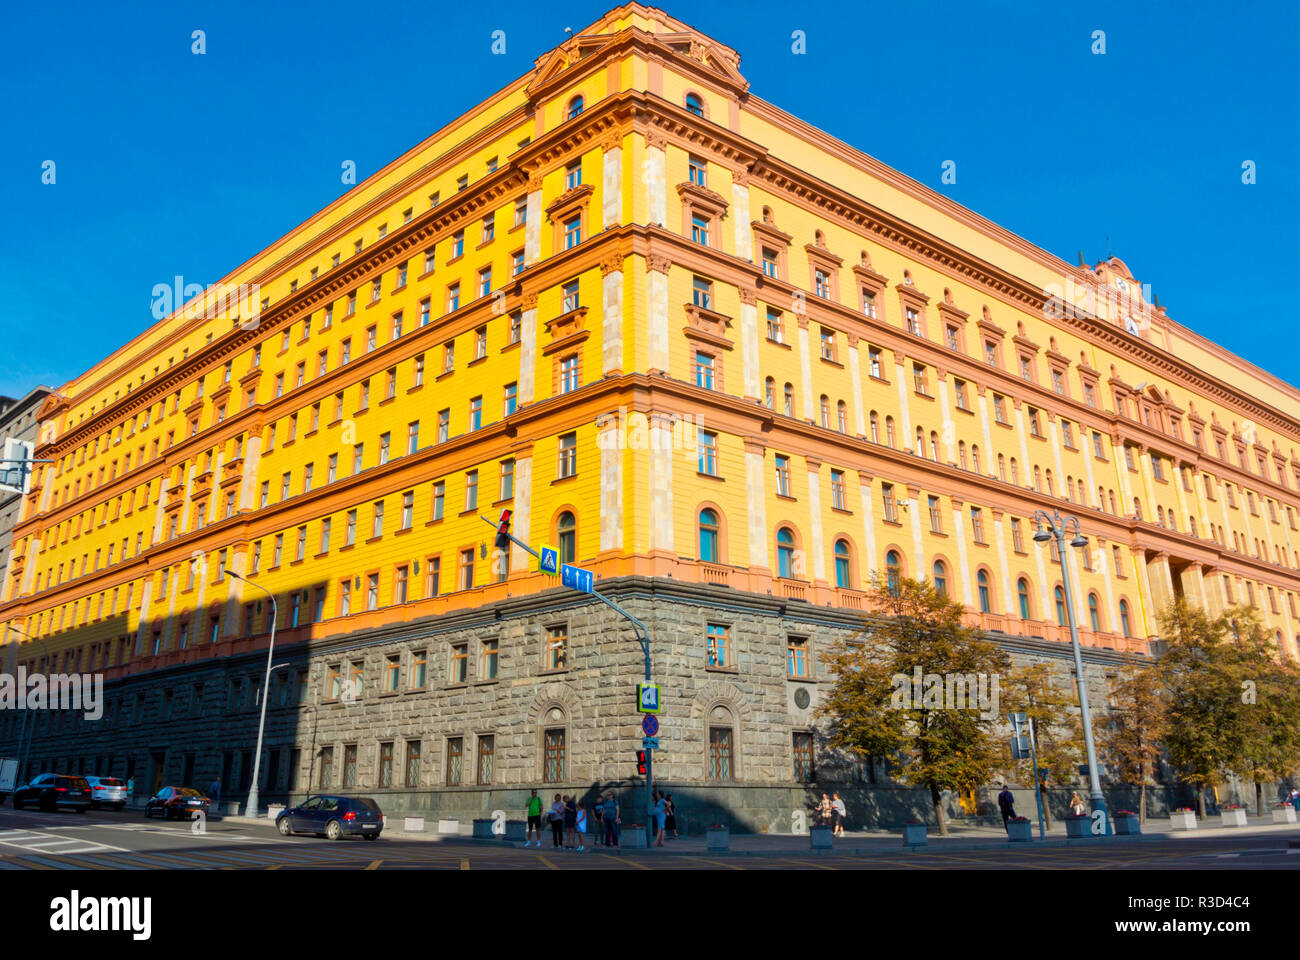 Lubyanka, headquarter of FSB, Russian security services, Meschansky district, central Moscow, Russia Stock Photo